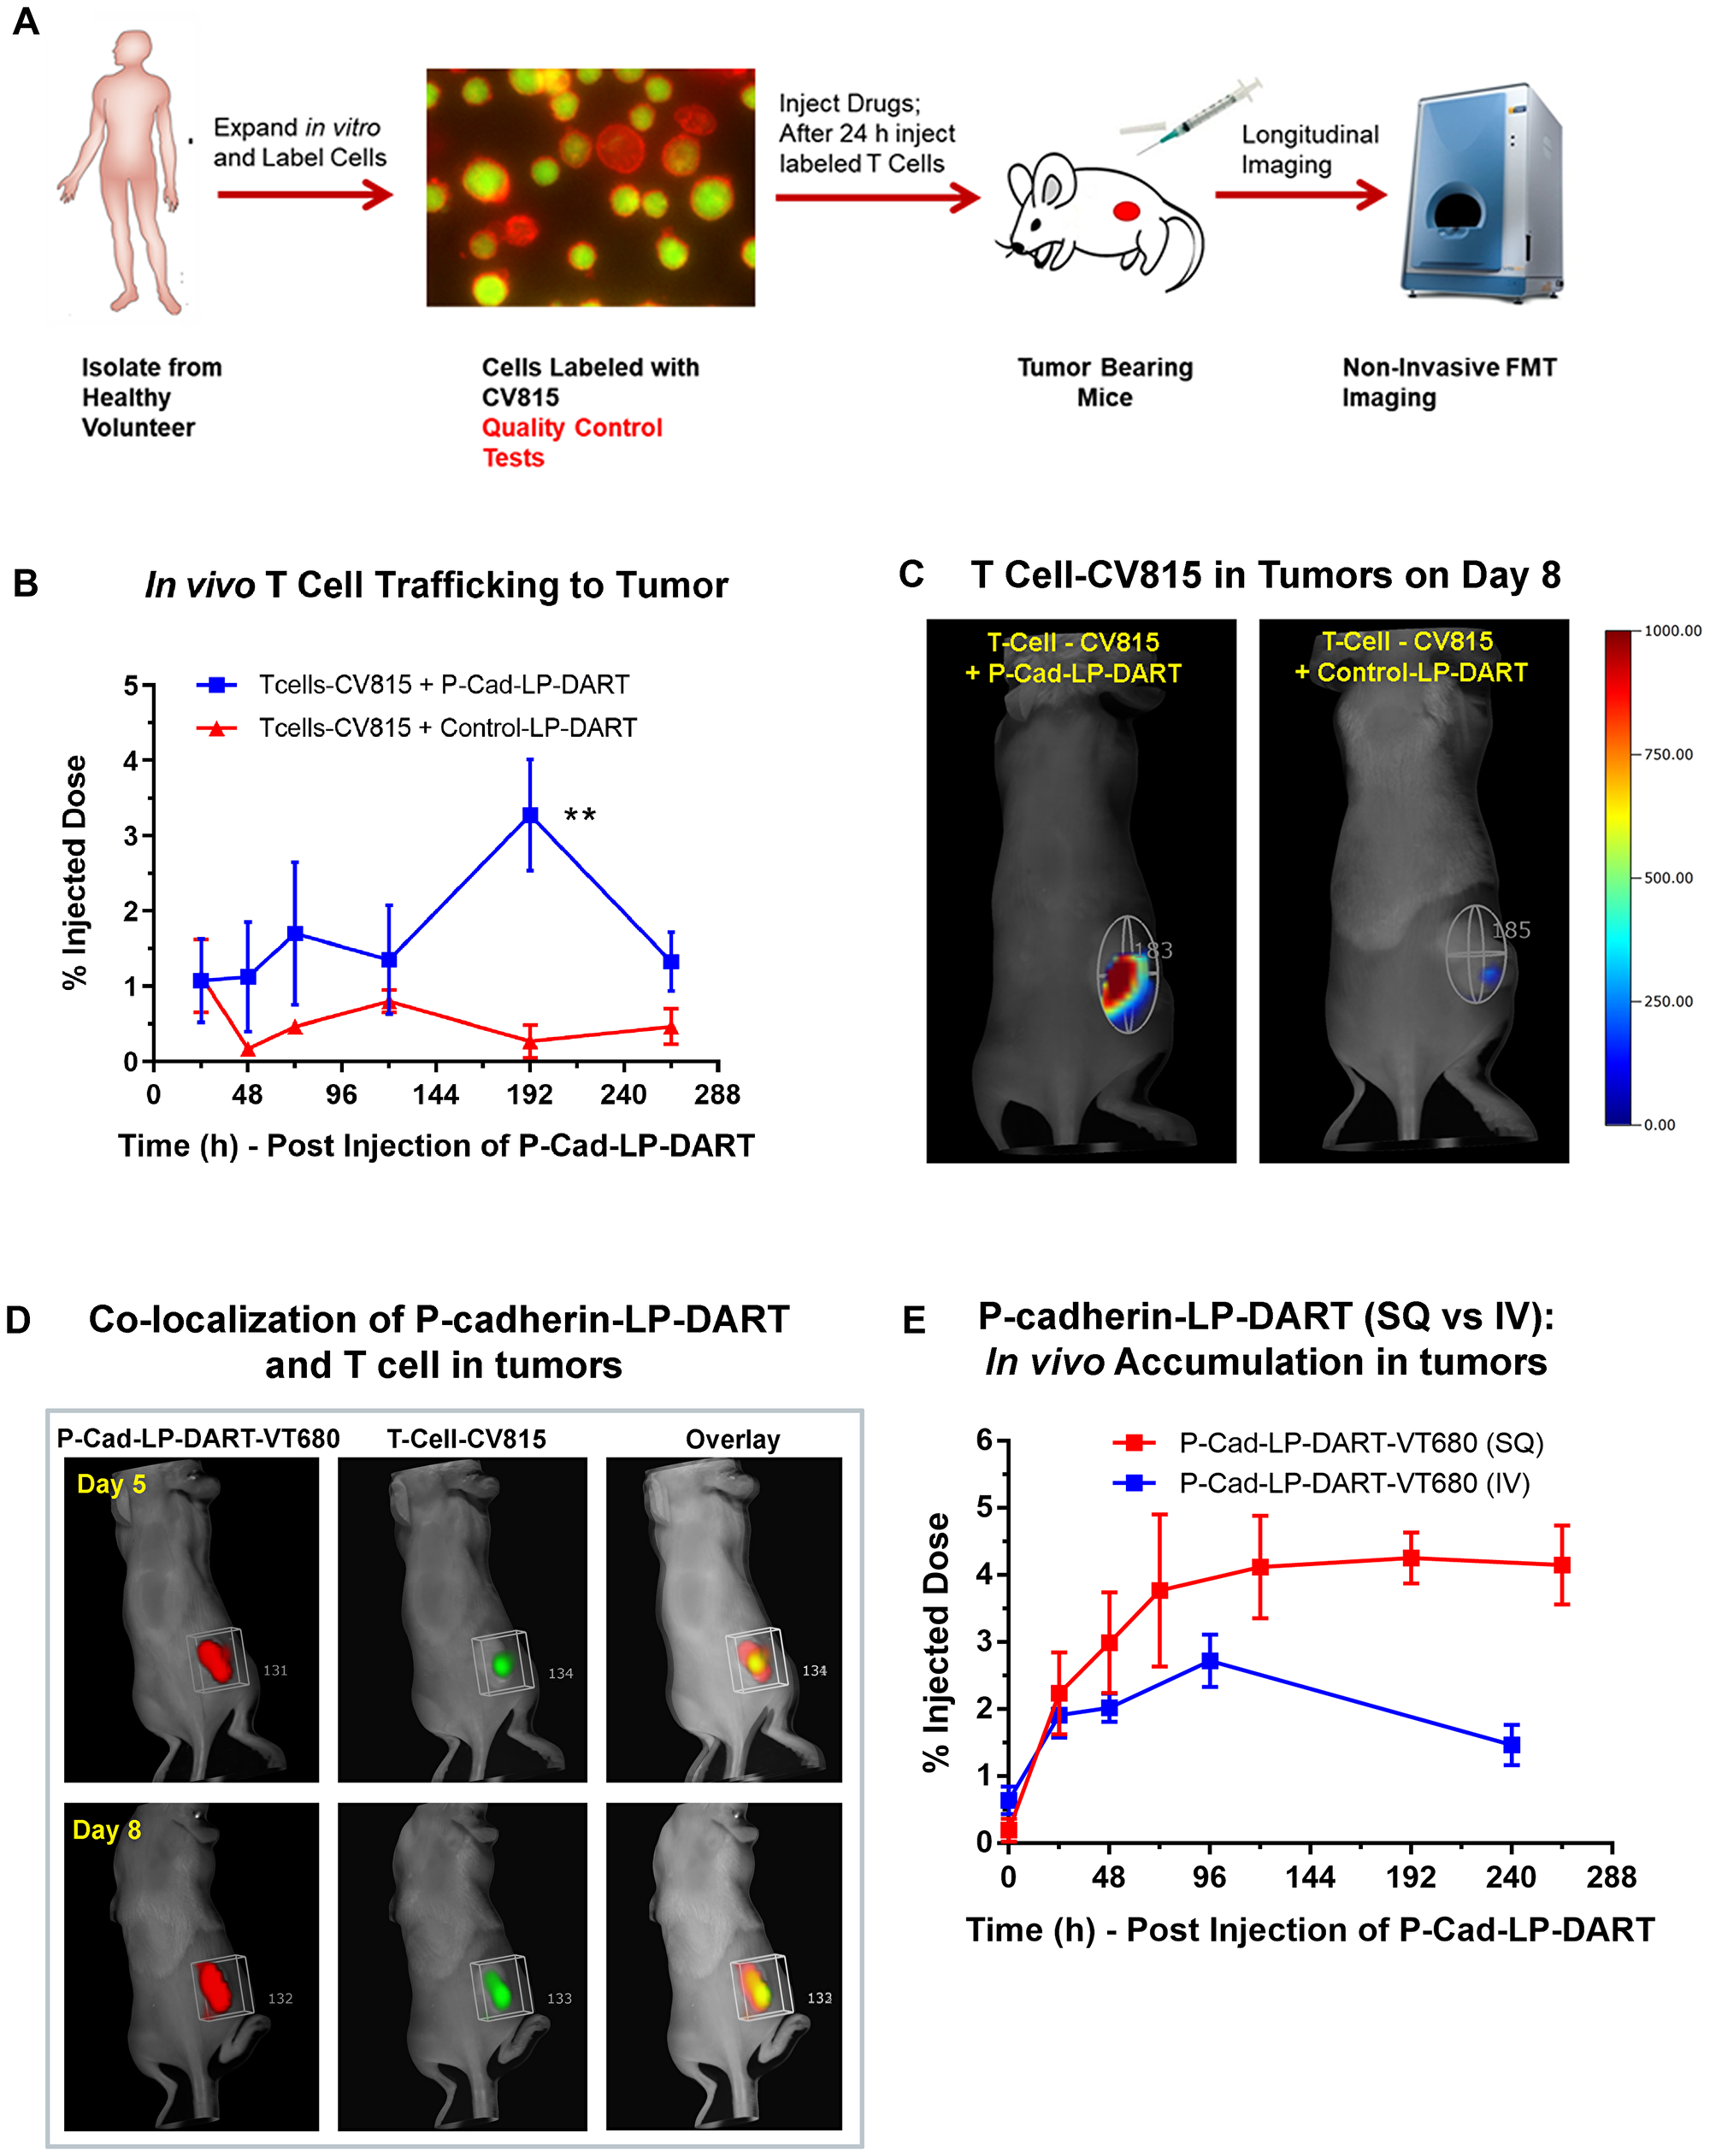 In vivo T cell trafficking in HCT-116 xenograft model by FMT imaging.